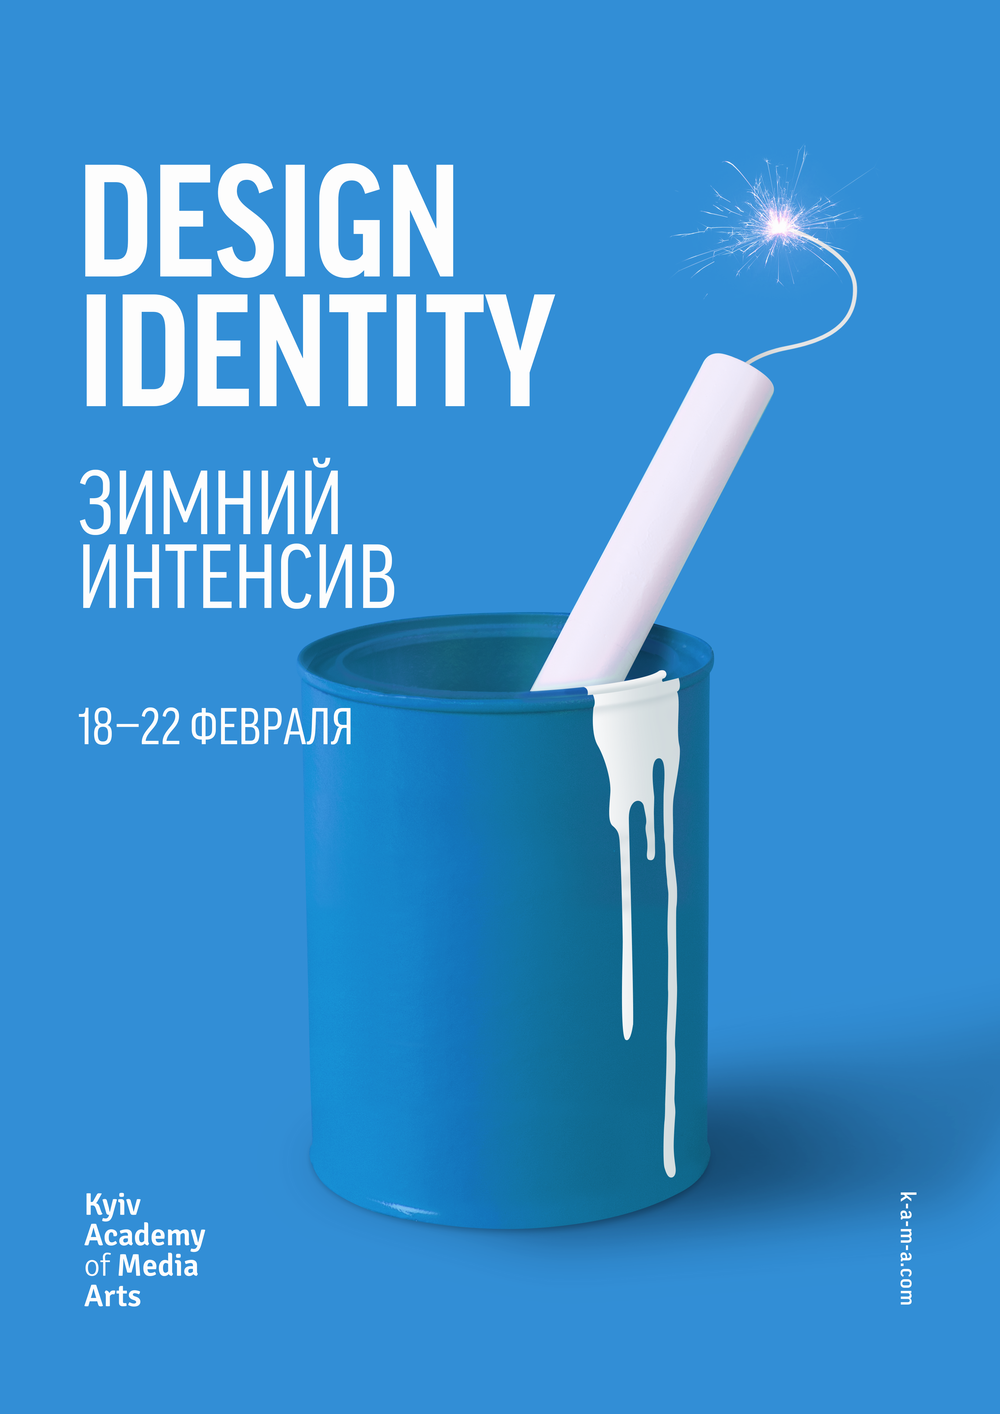 branding19_poster (1).png